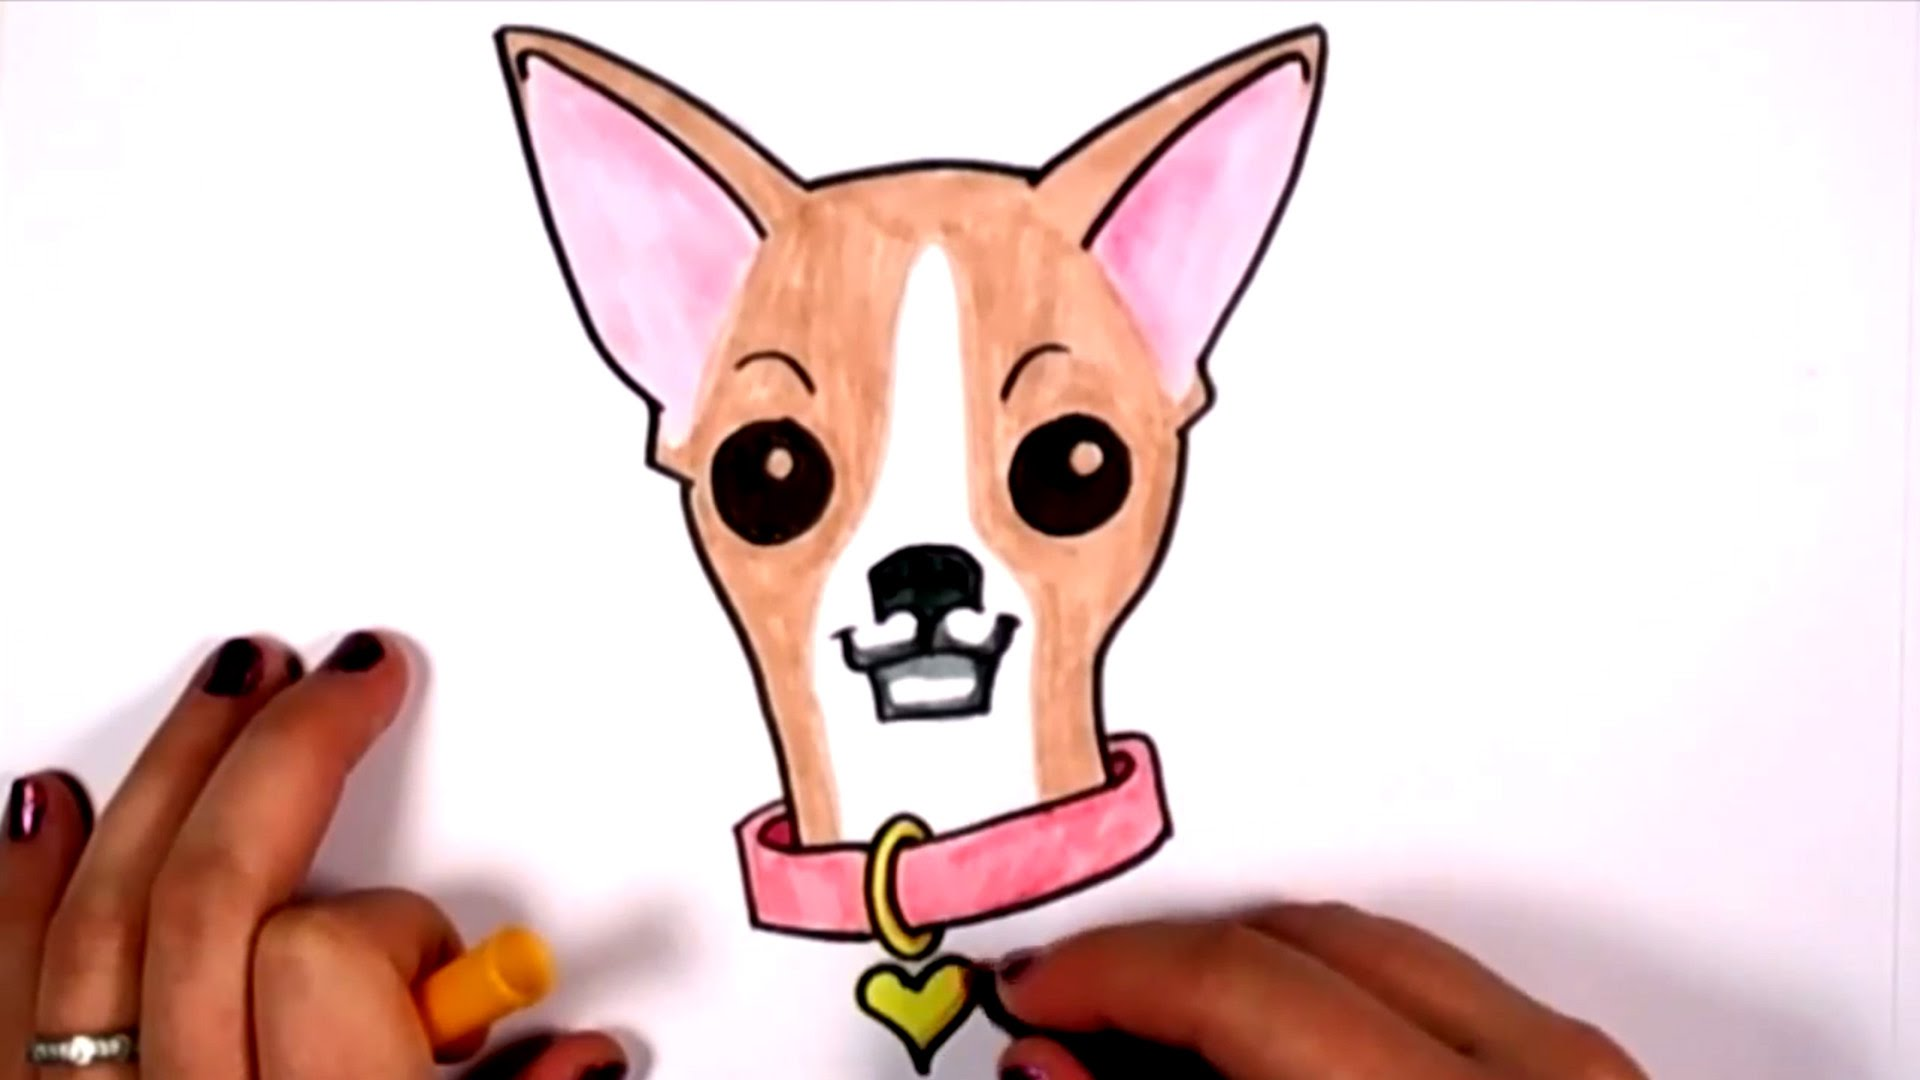 Cute Chihuahua Drawing at GetDrawings.com   Free for personal use ...